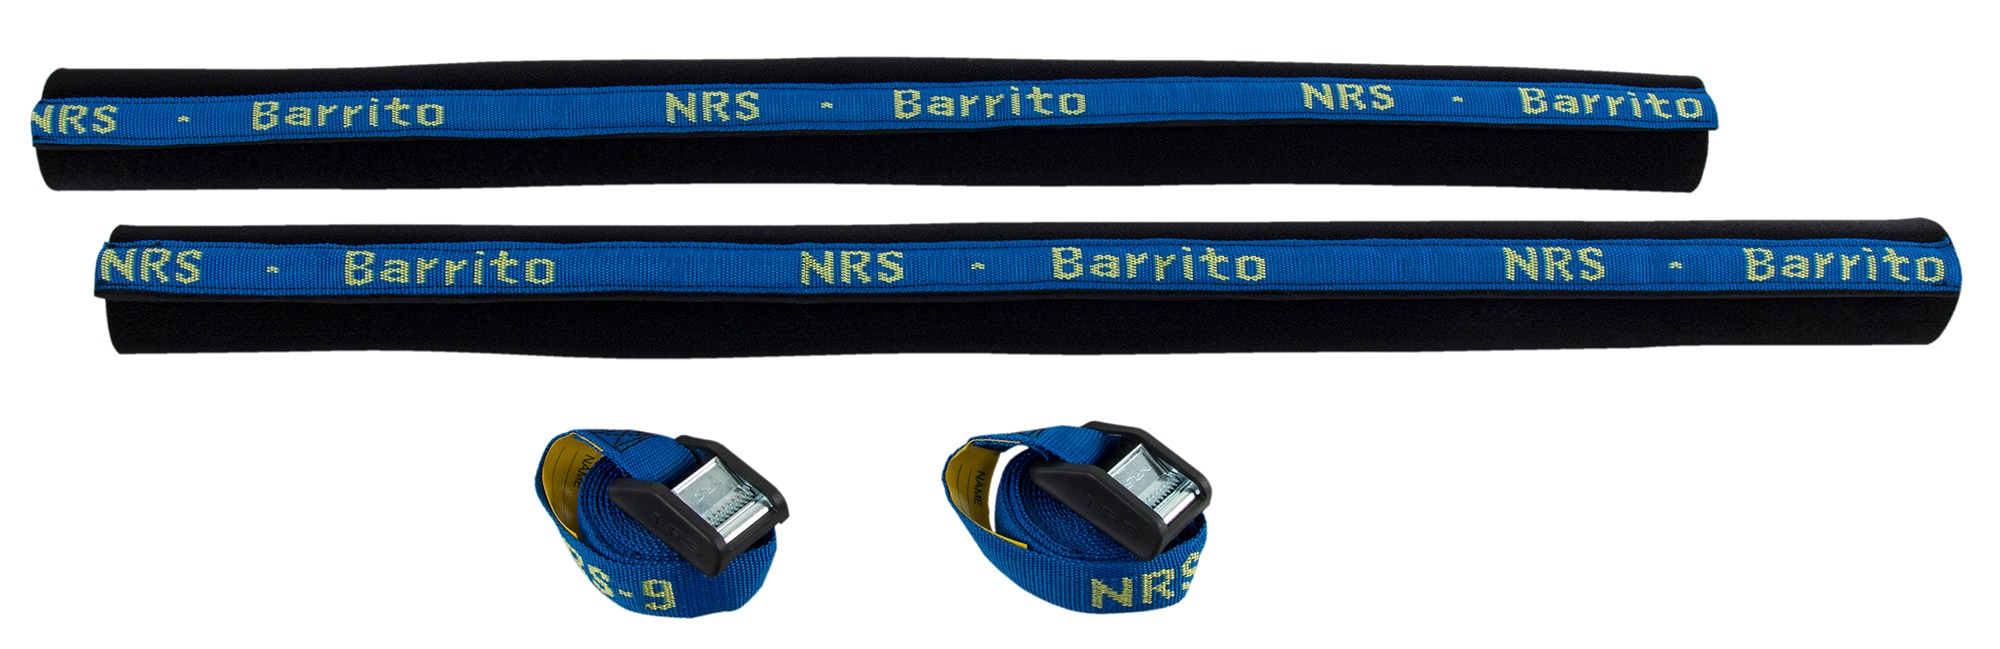 NRS Barrito Rack Pads with Straps - Pair